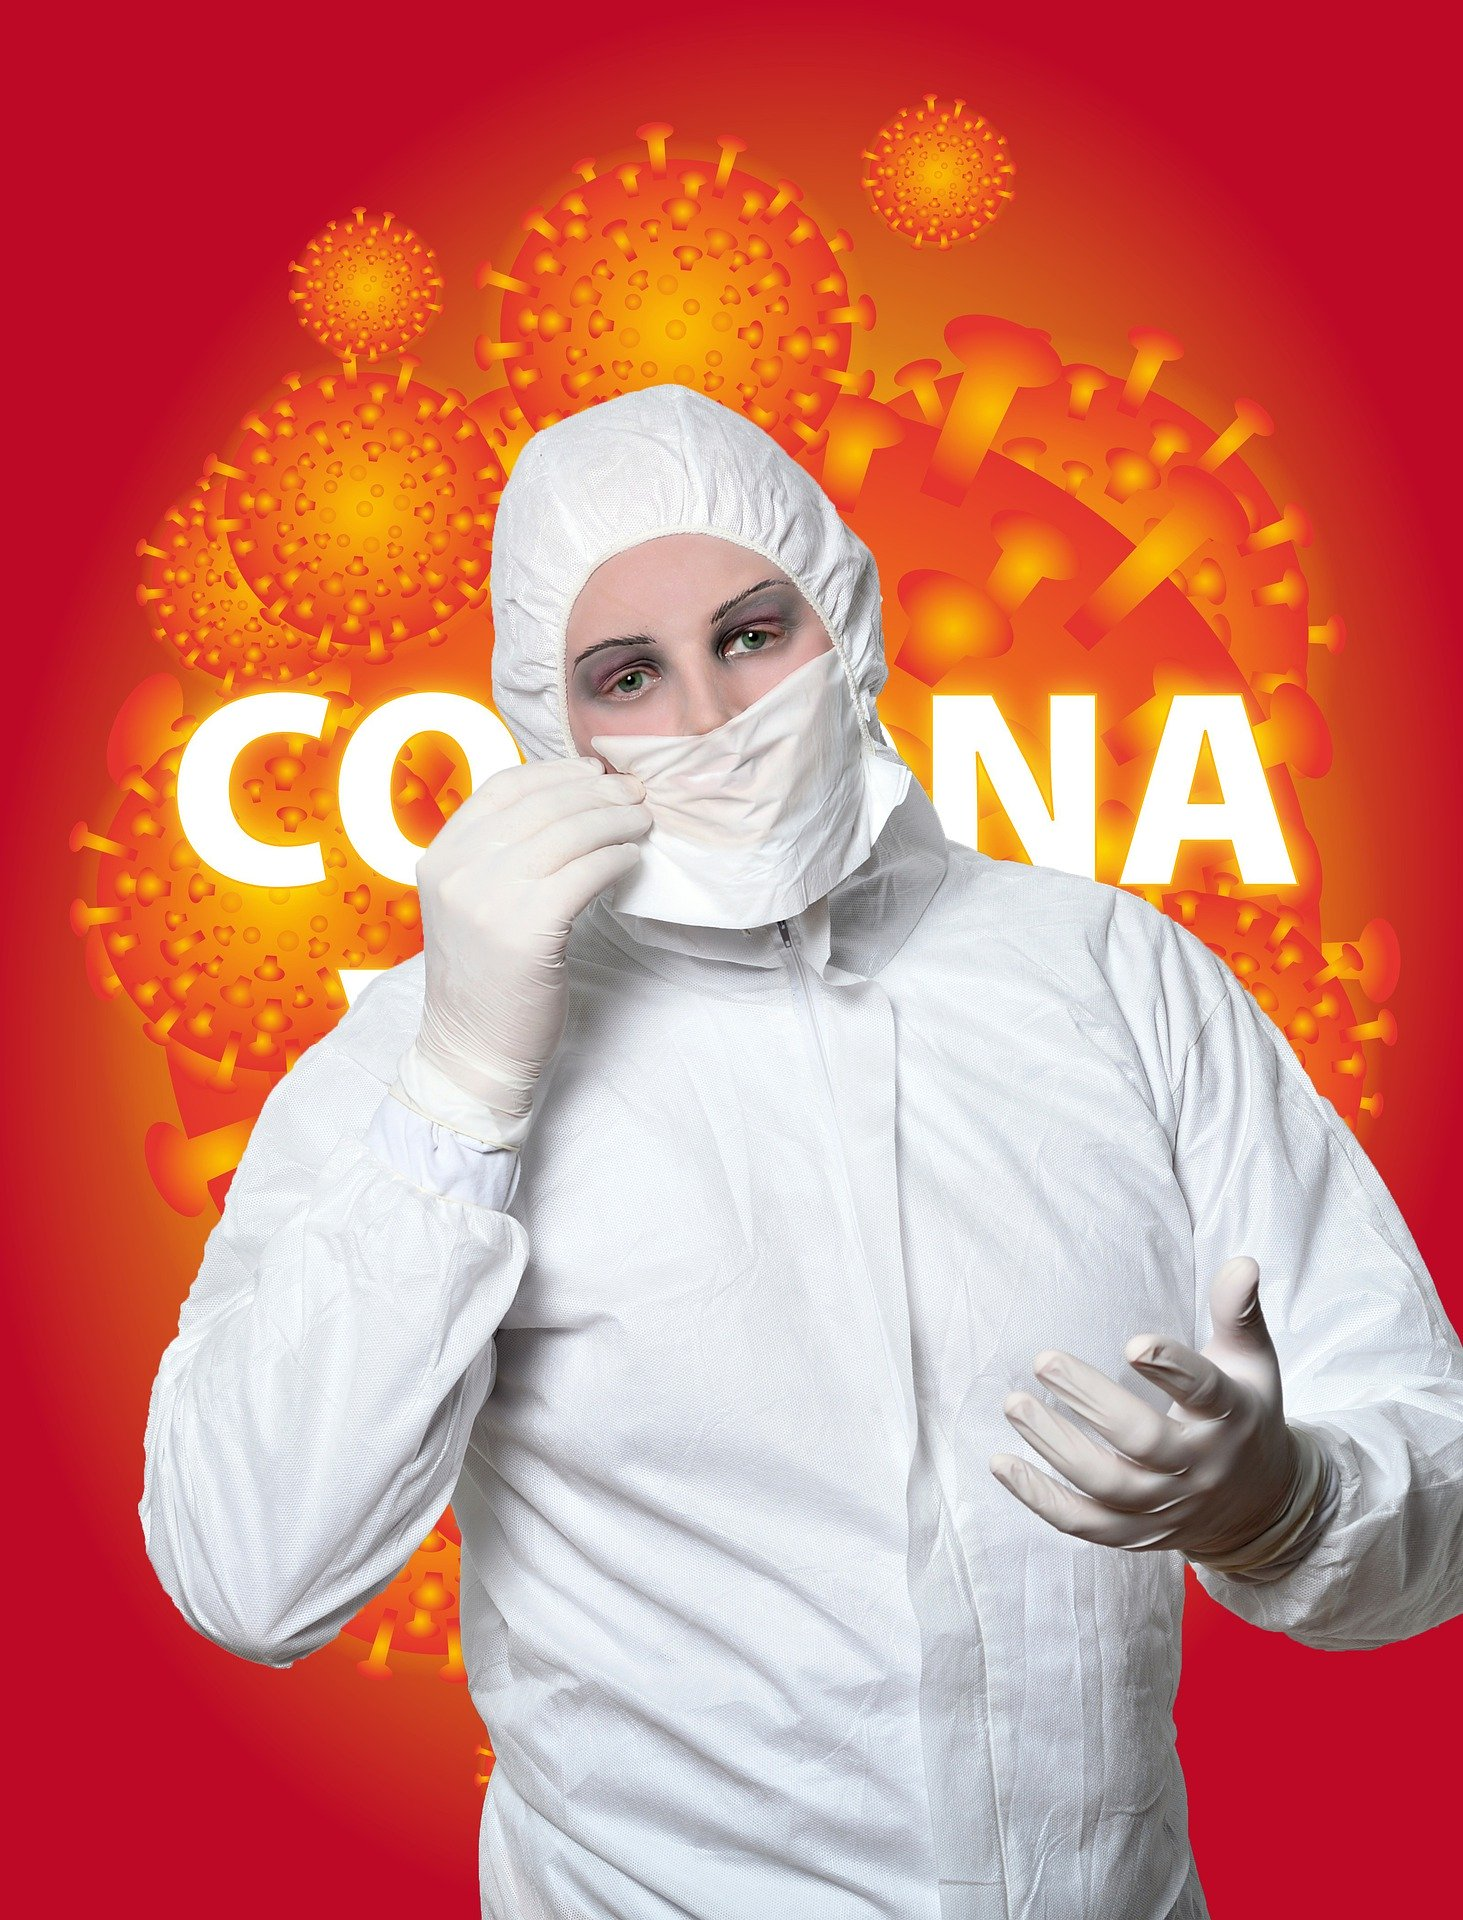 Fearful of the Coronavirus?